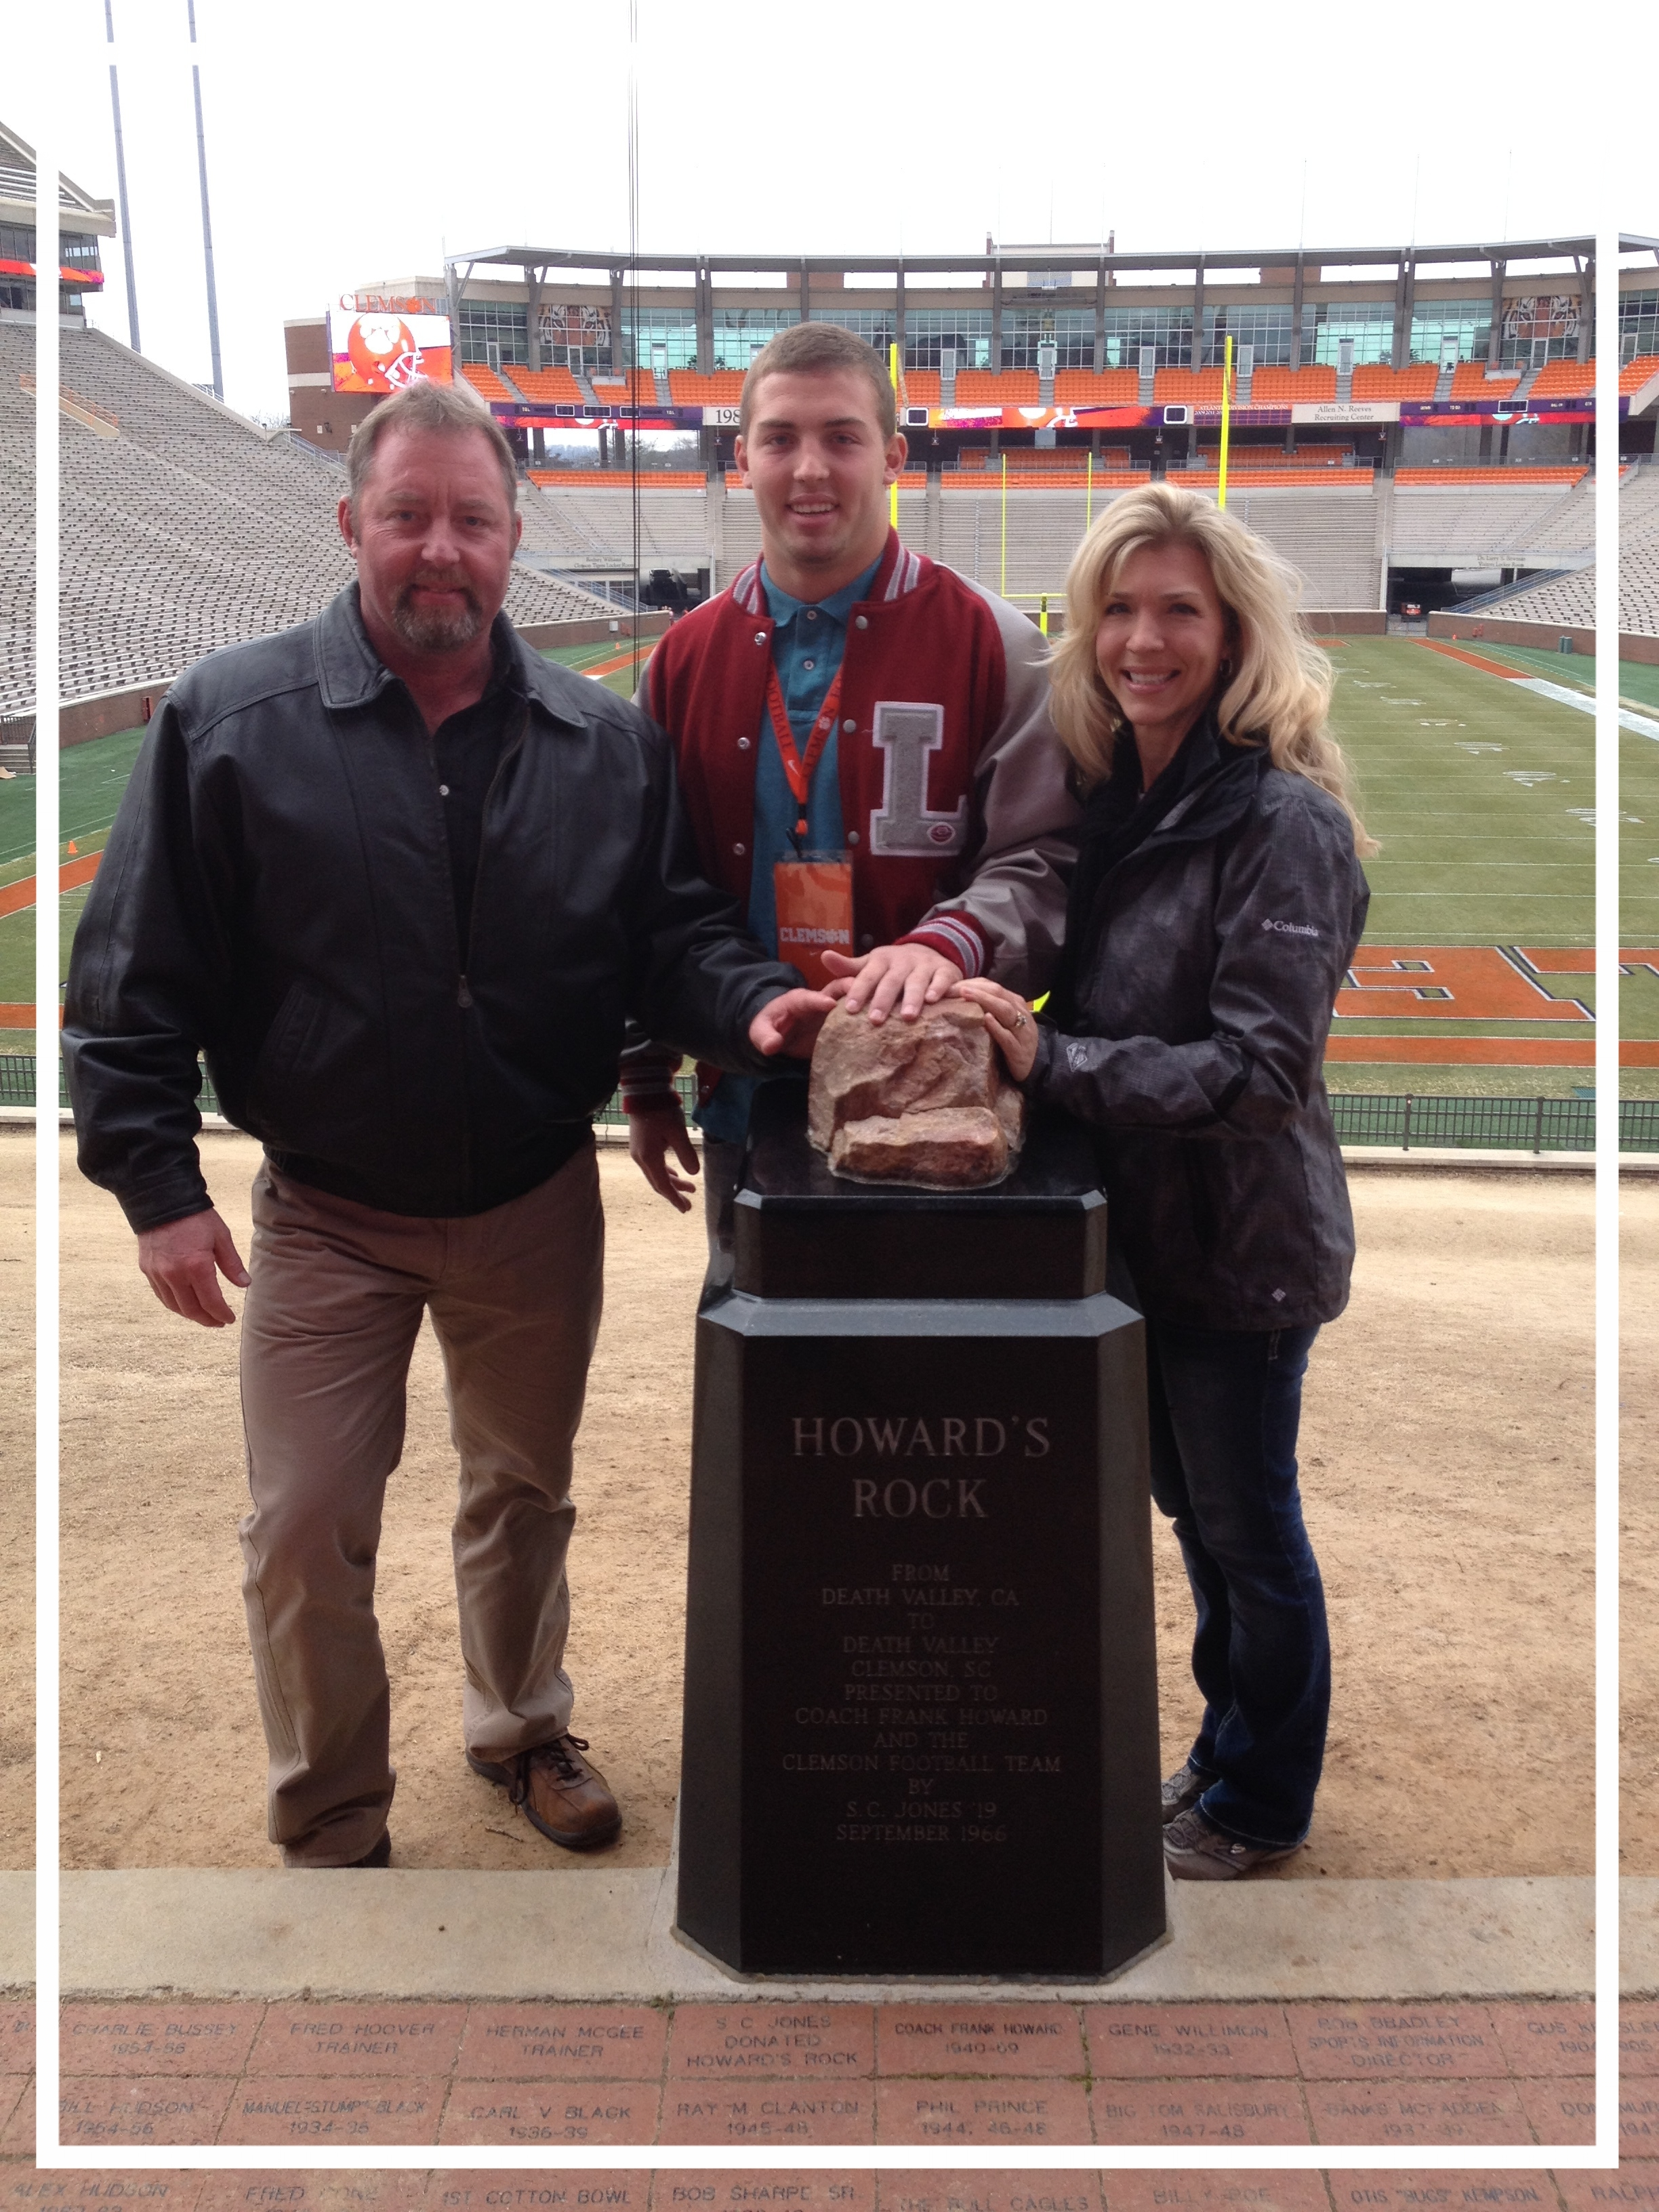 Agent Rick Bell with his wife and son at Clemson University Memorial Statium